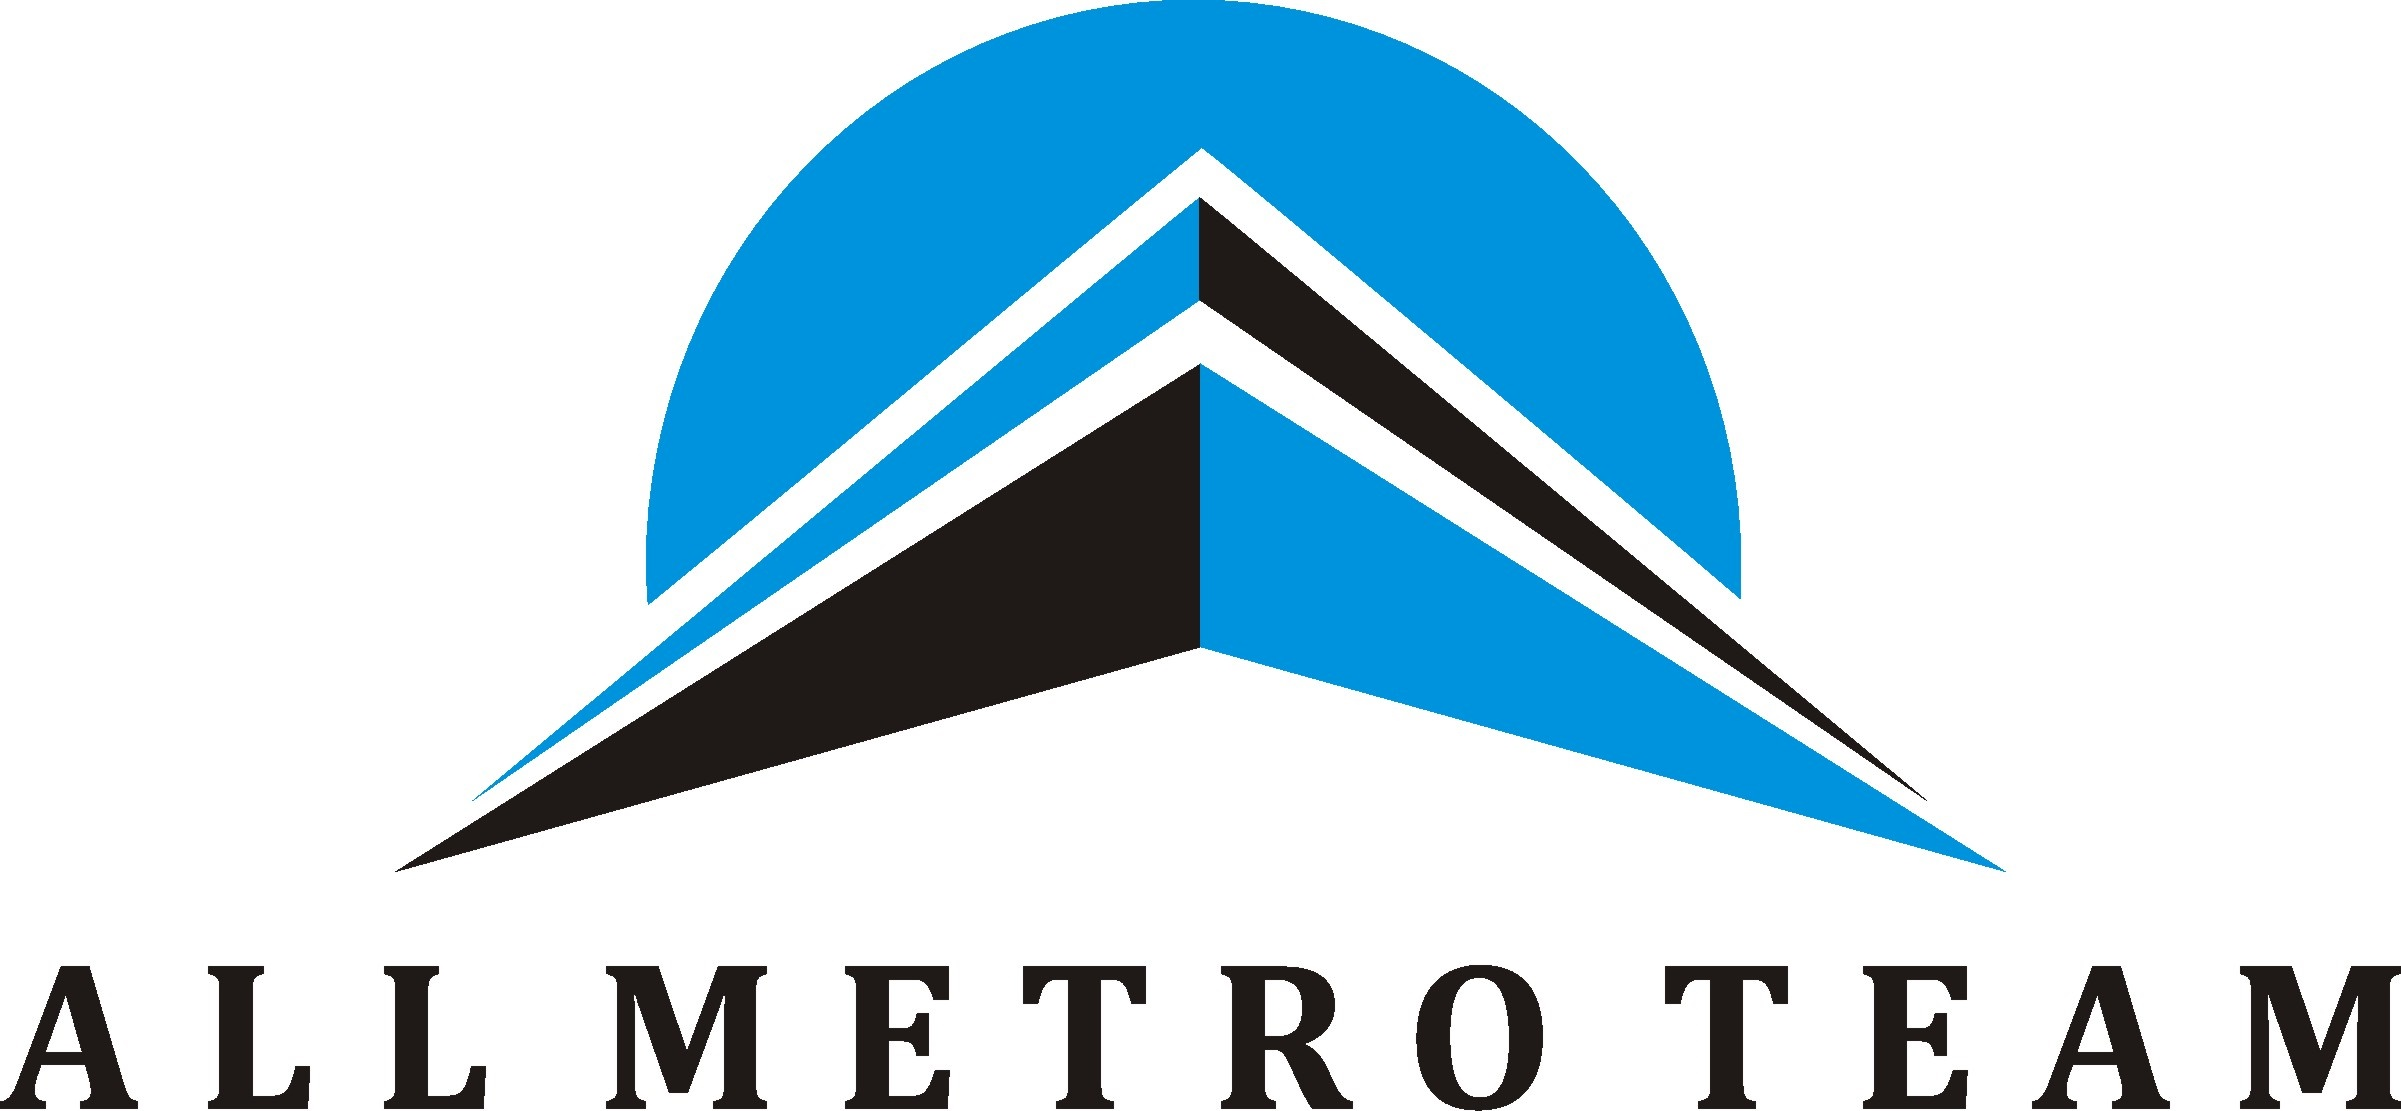 ALL METRO TEAM - logo